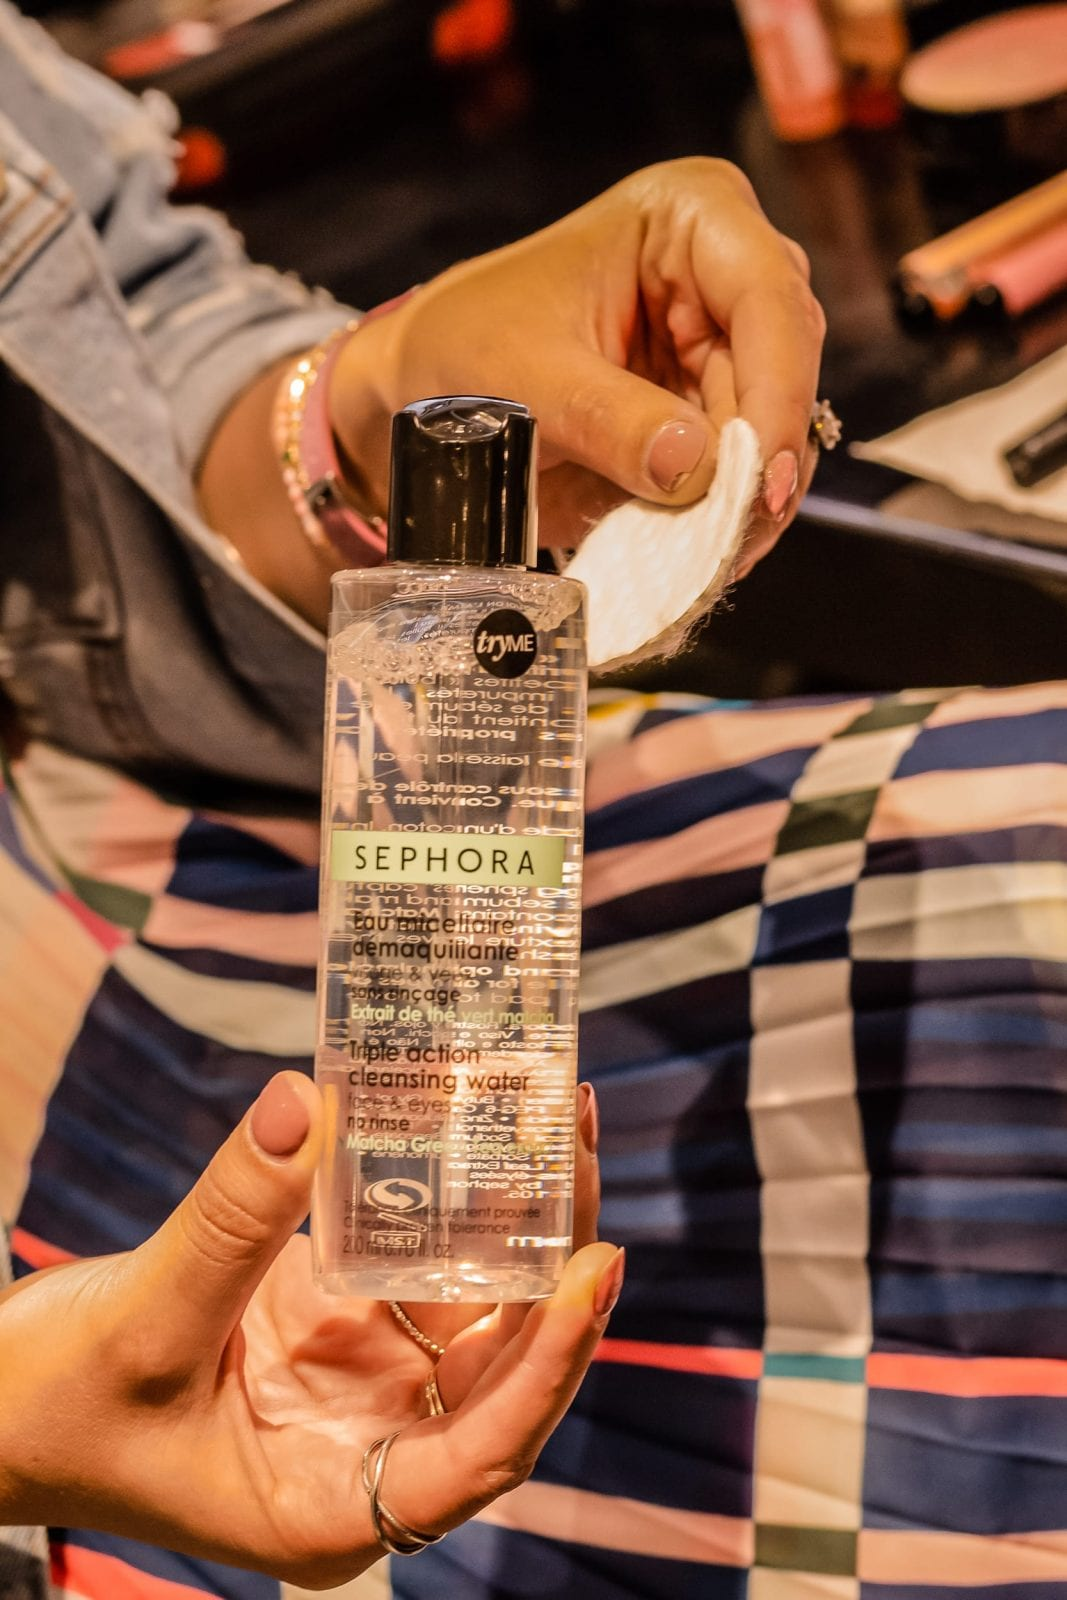 This is the makeup remover from The Sephora Collection.